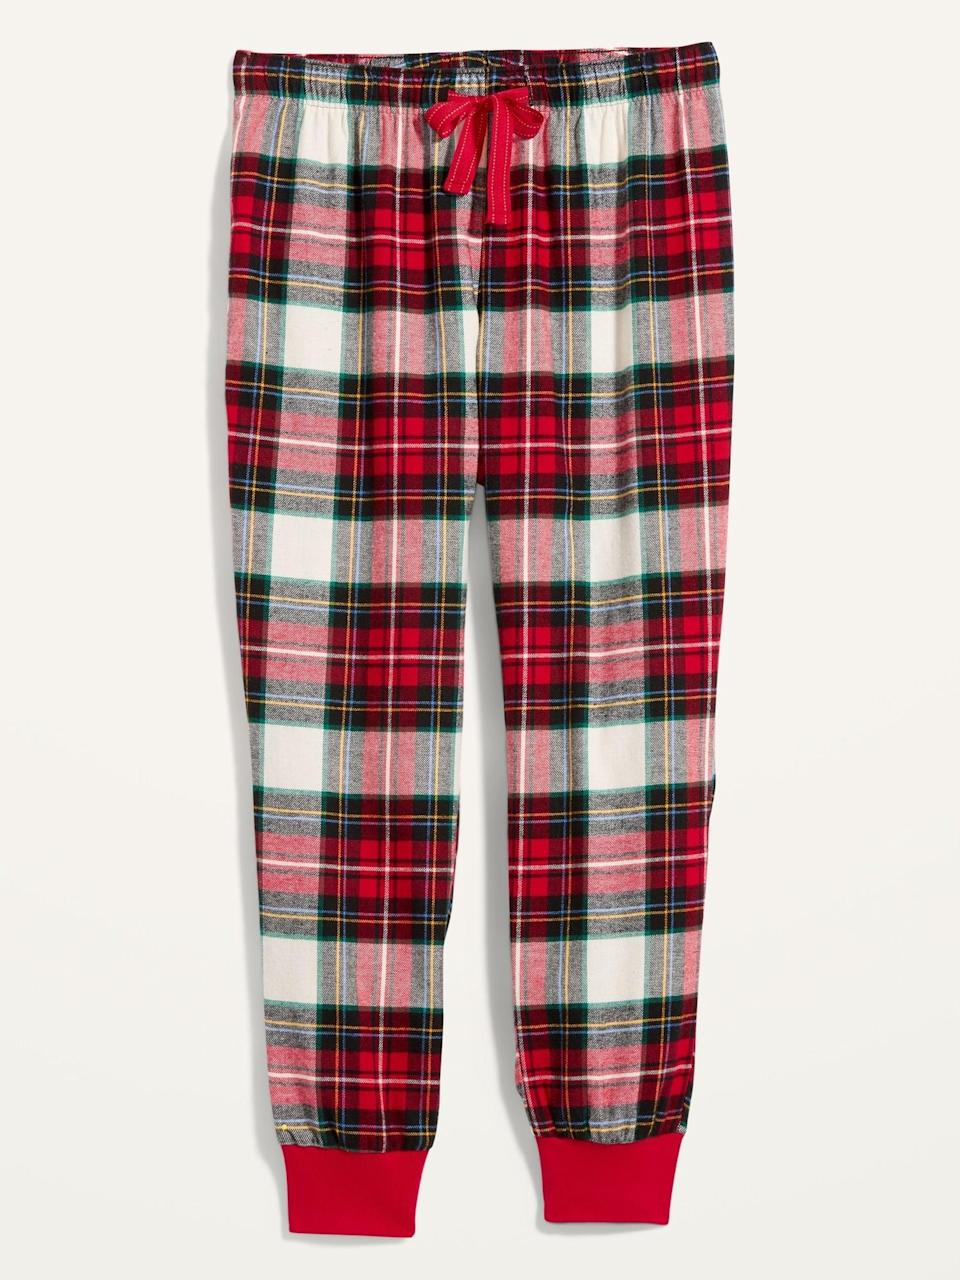 <p>Everyday joggers have been reimagined in holiday form. I can't wait to wear these <span>Patterned Flannel Jogger Pajama Pants</span> ($18, originally $20).</p>